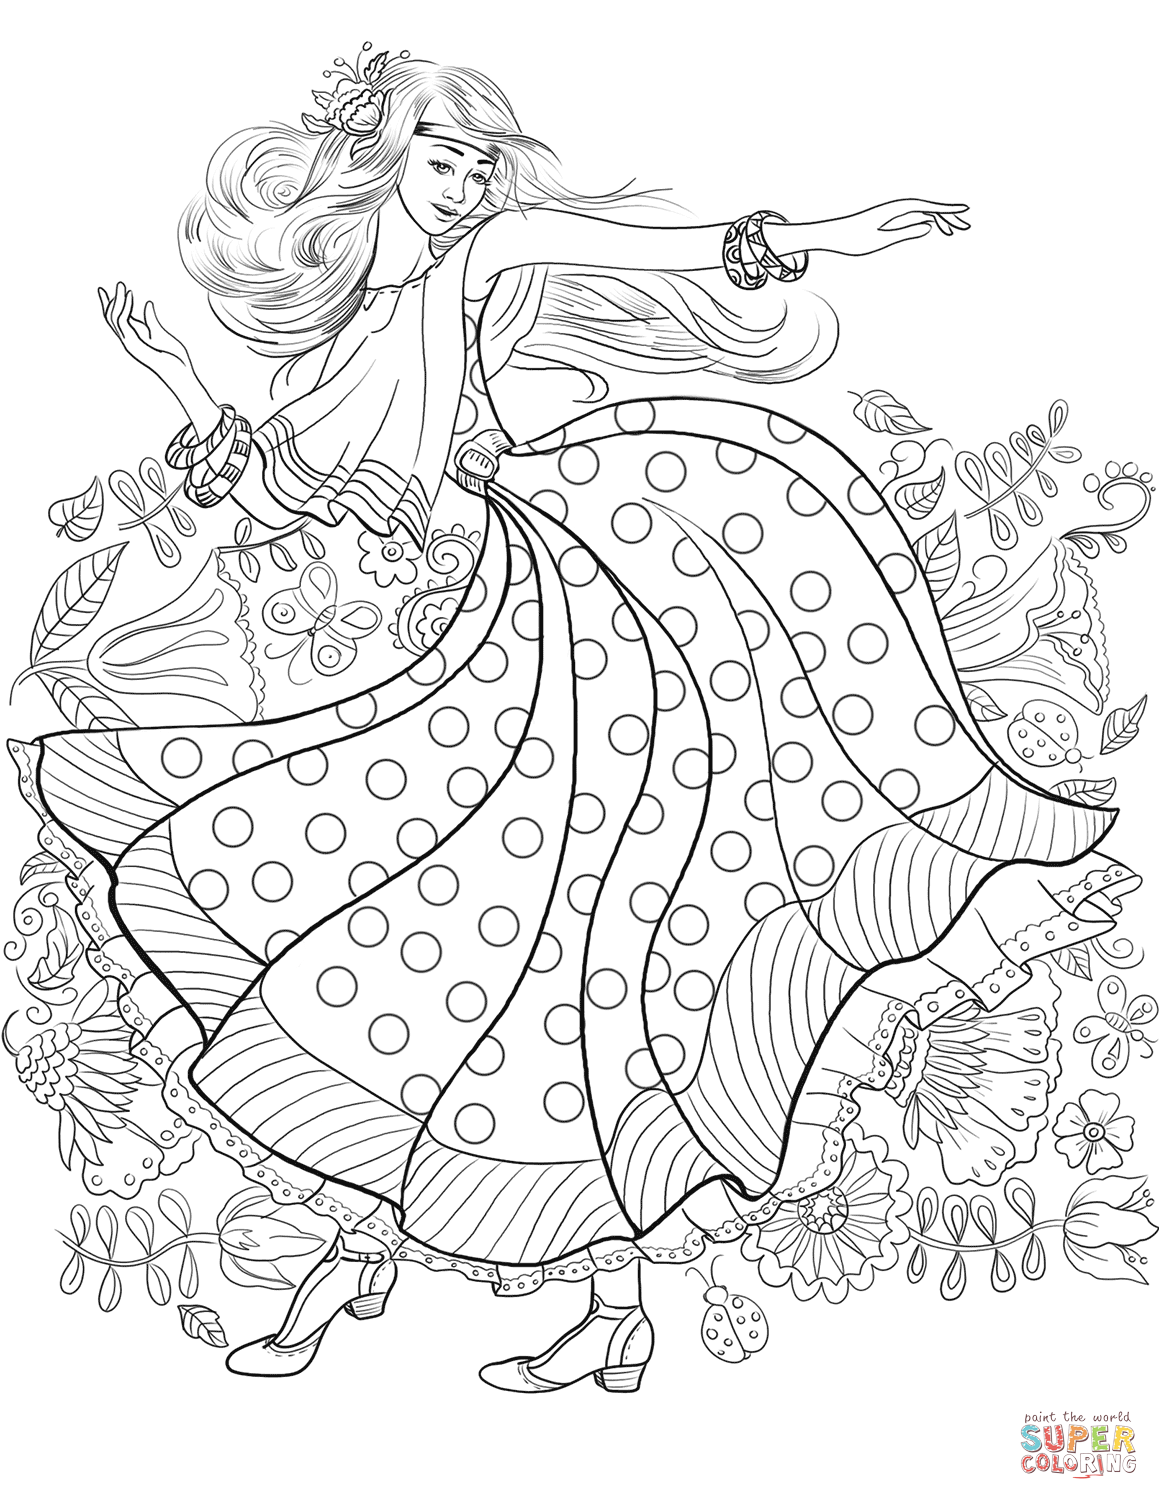 hippie girl coloring pages hippie girl coloring pages hippie girl coloring pages